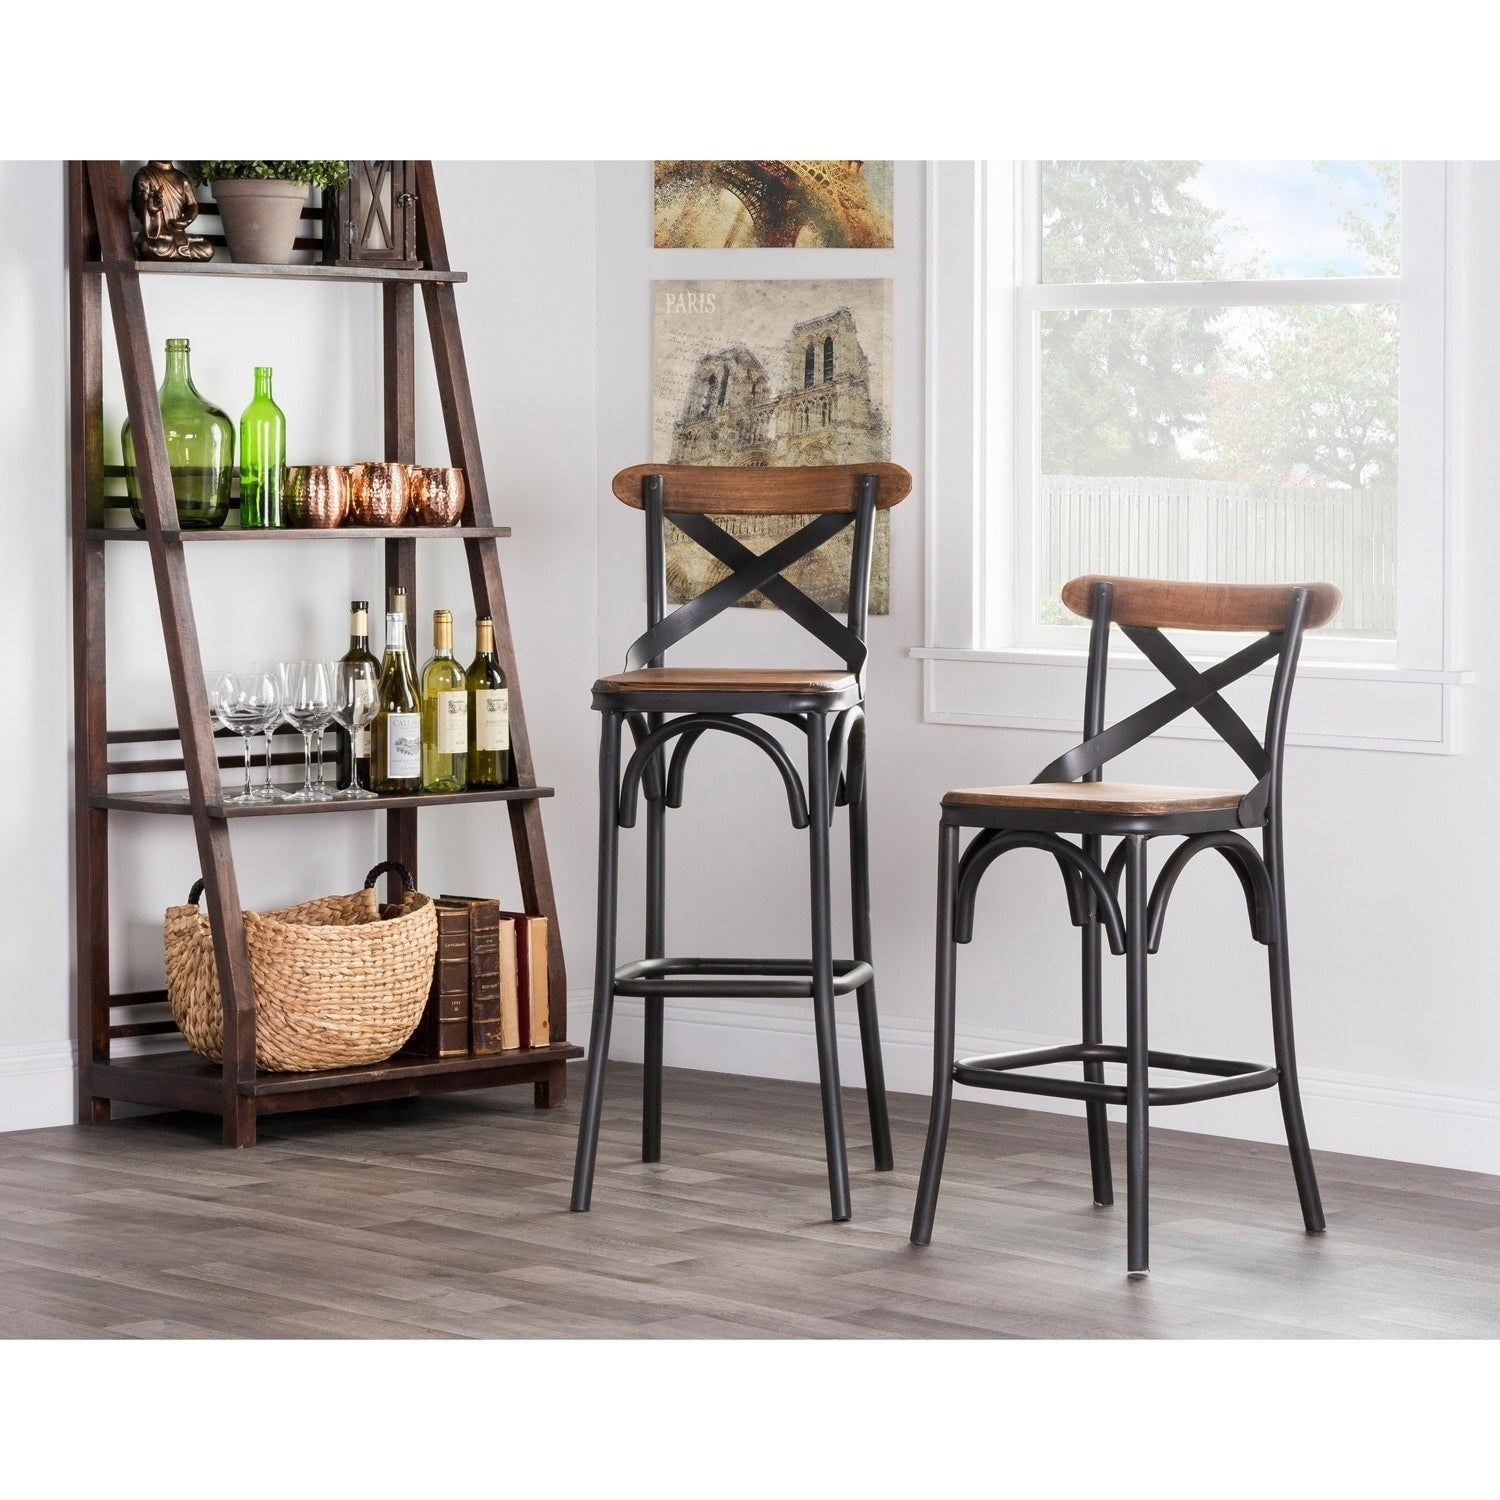 Bentley 24 Inch Counter Stool By Kosas Home  36Hx145Wx145D